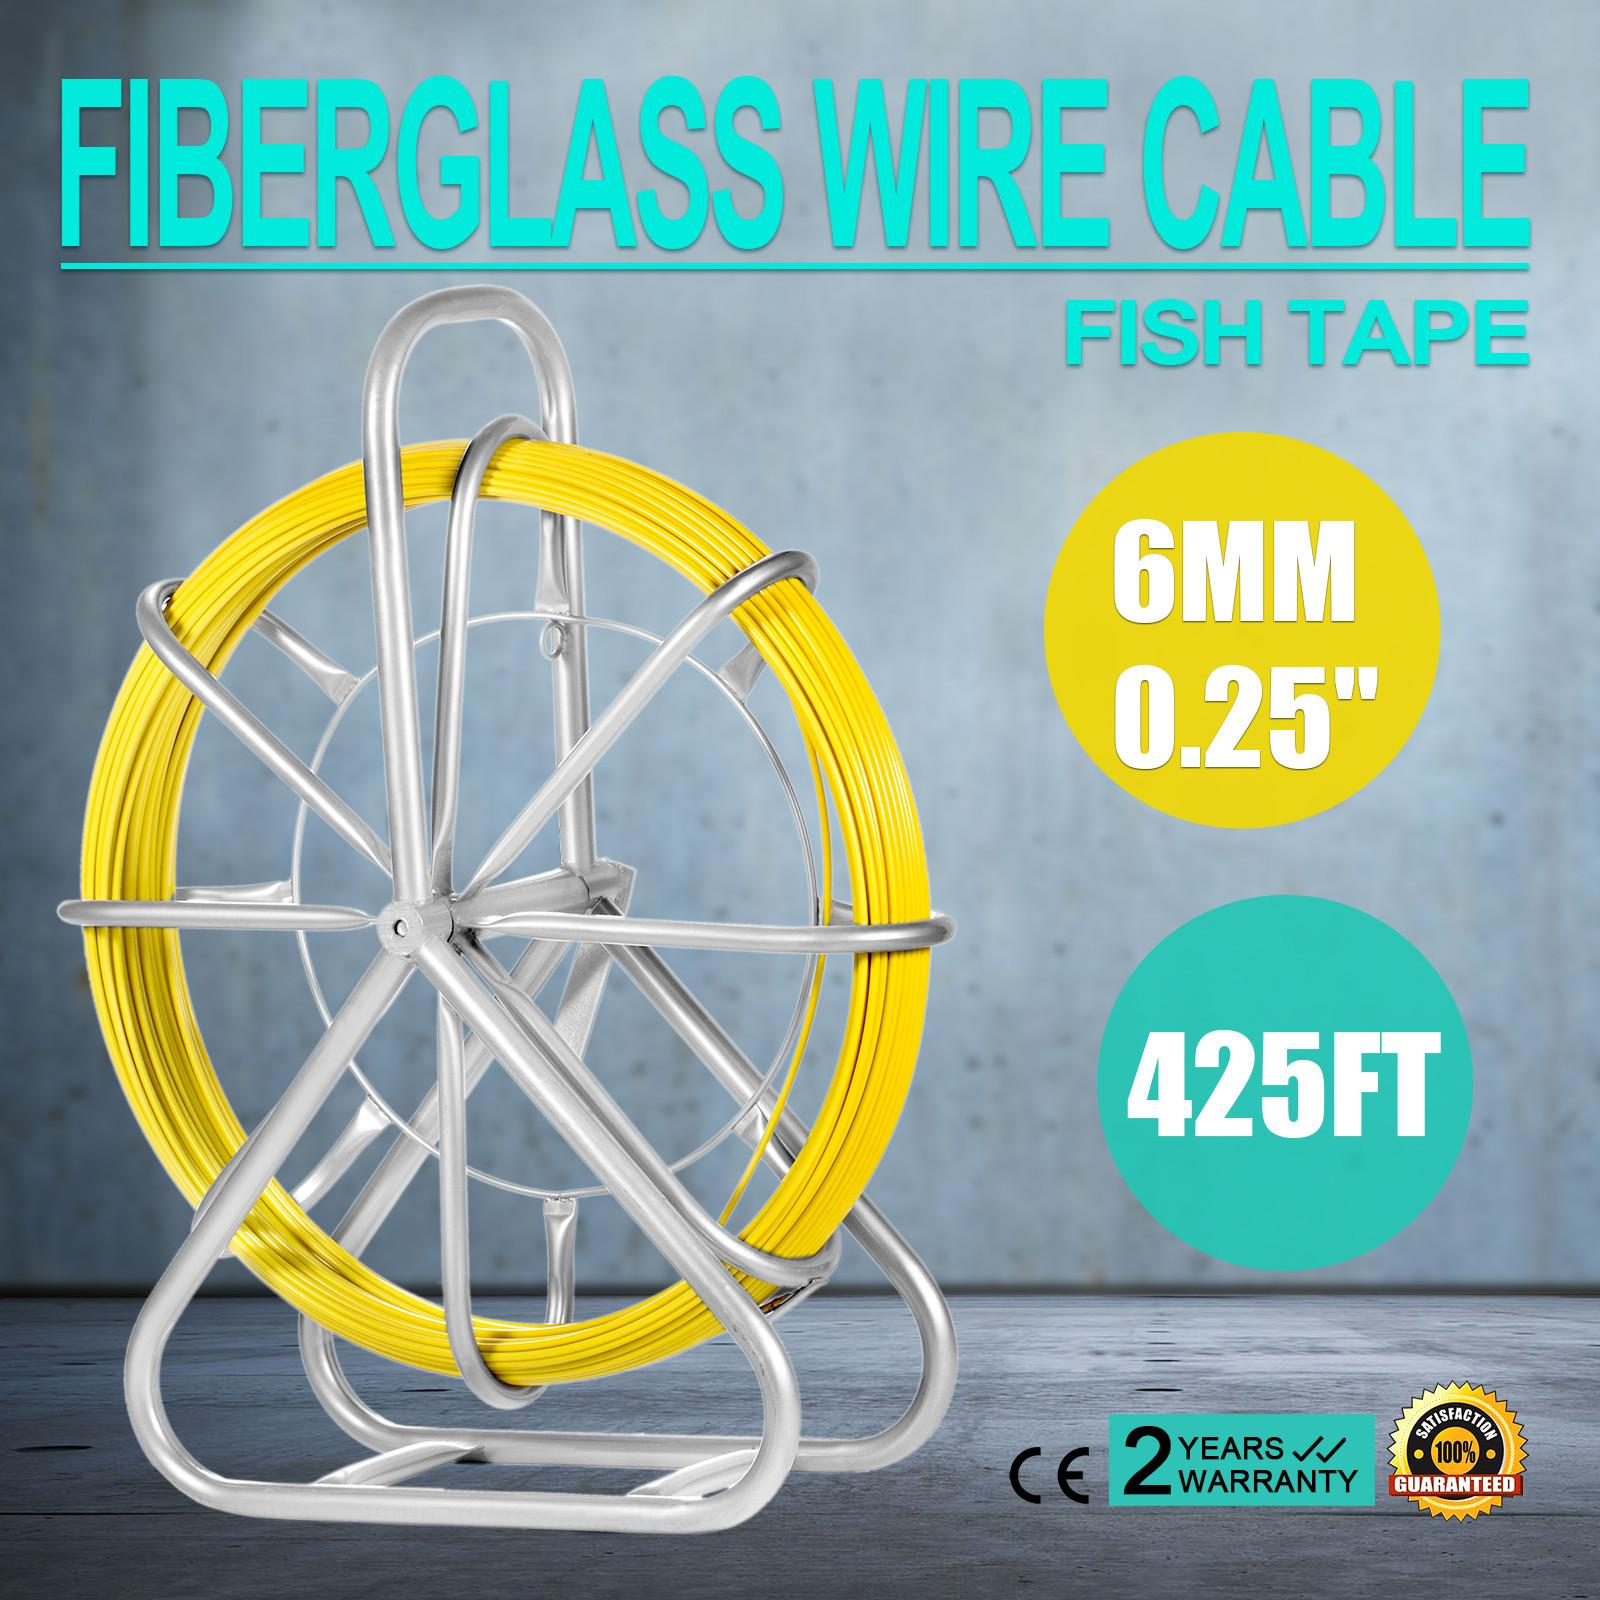 Wire Duct Images Of Home Design Wiring Cable Raceway 2018 Vevor Fish Tape Fiberglass 6mm 425ft Rodder Continuous